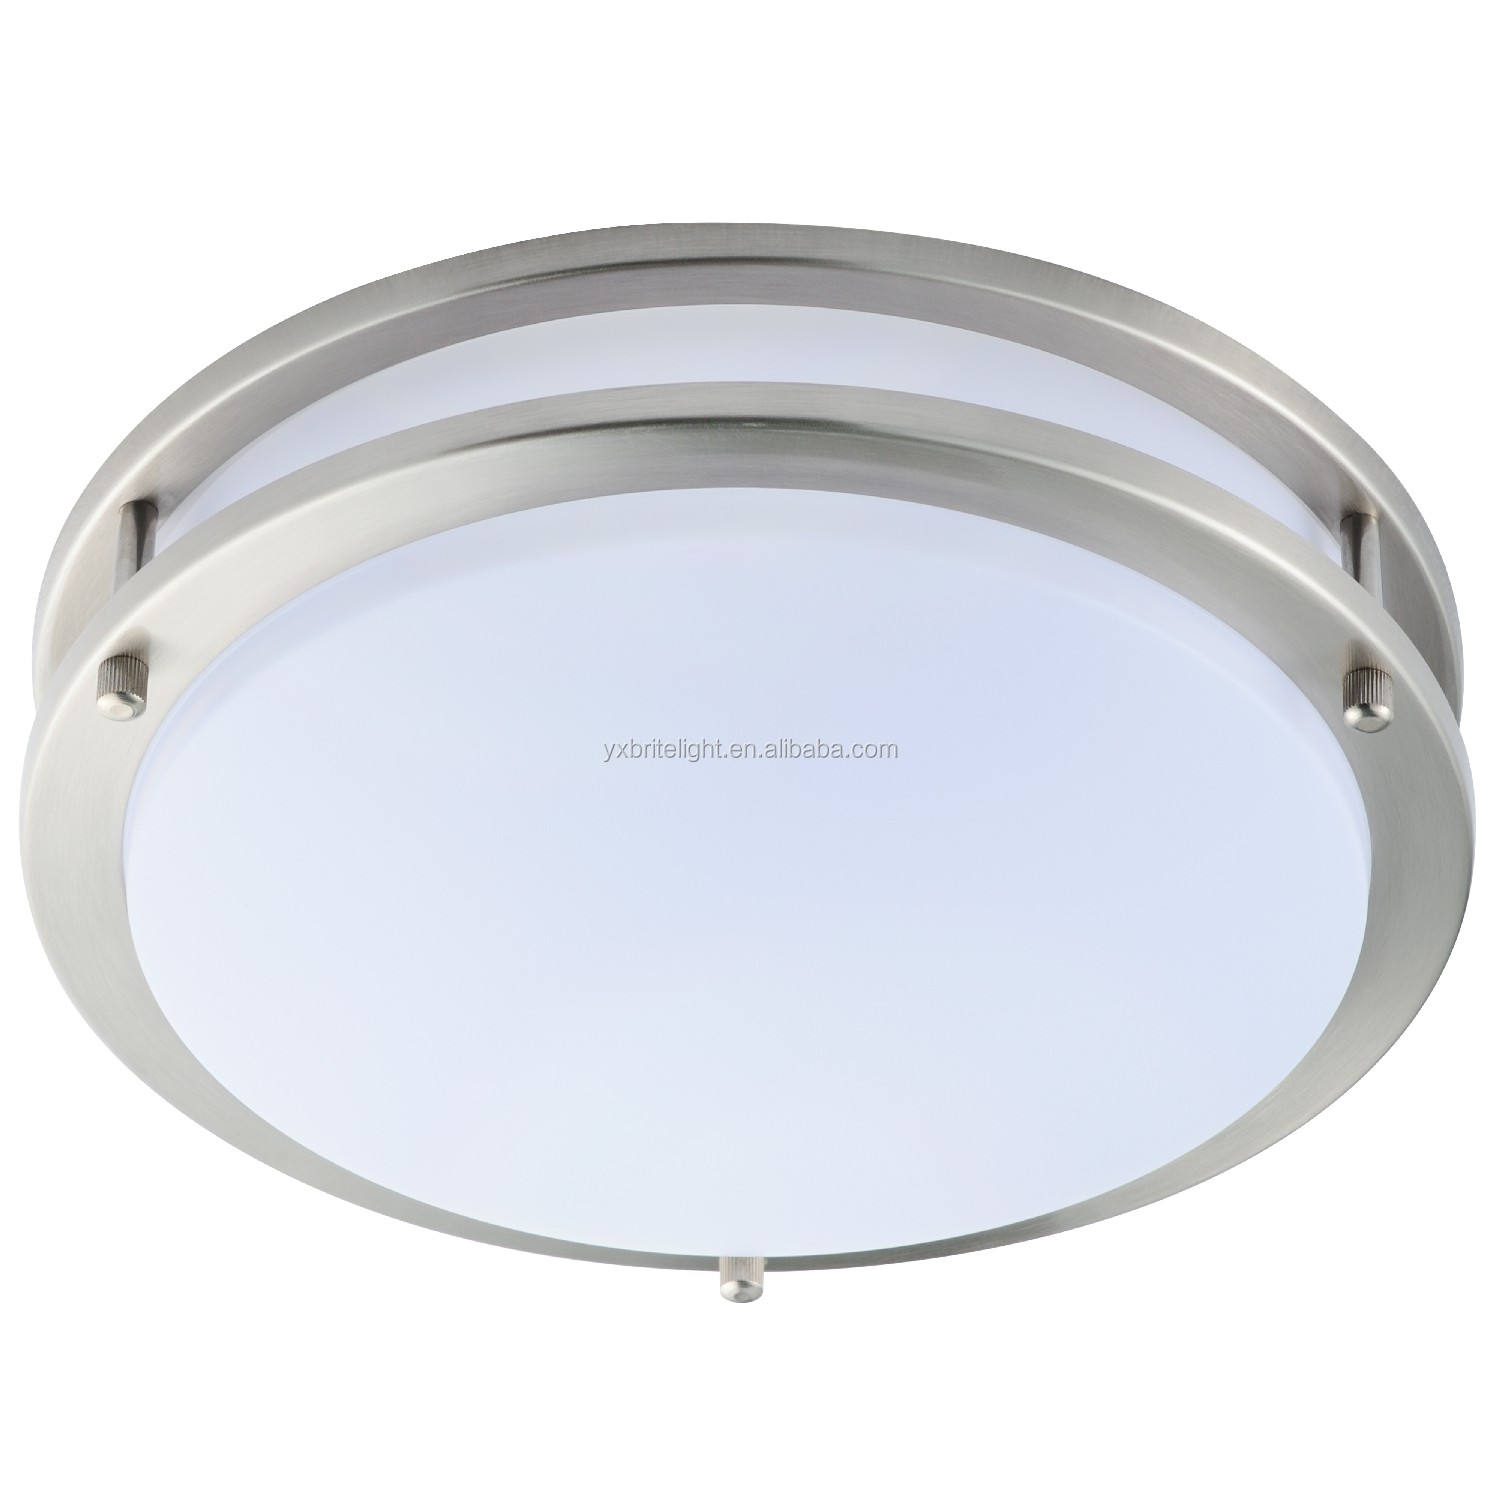 white brushed nickel aluminum light housing acrylic chandelier bedroom ceiling lamp